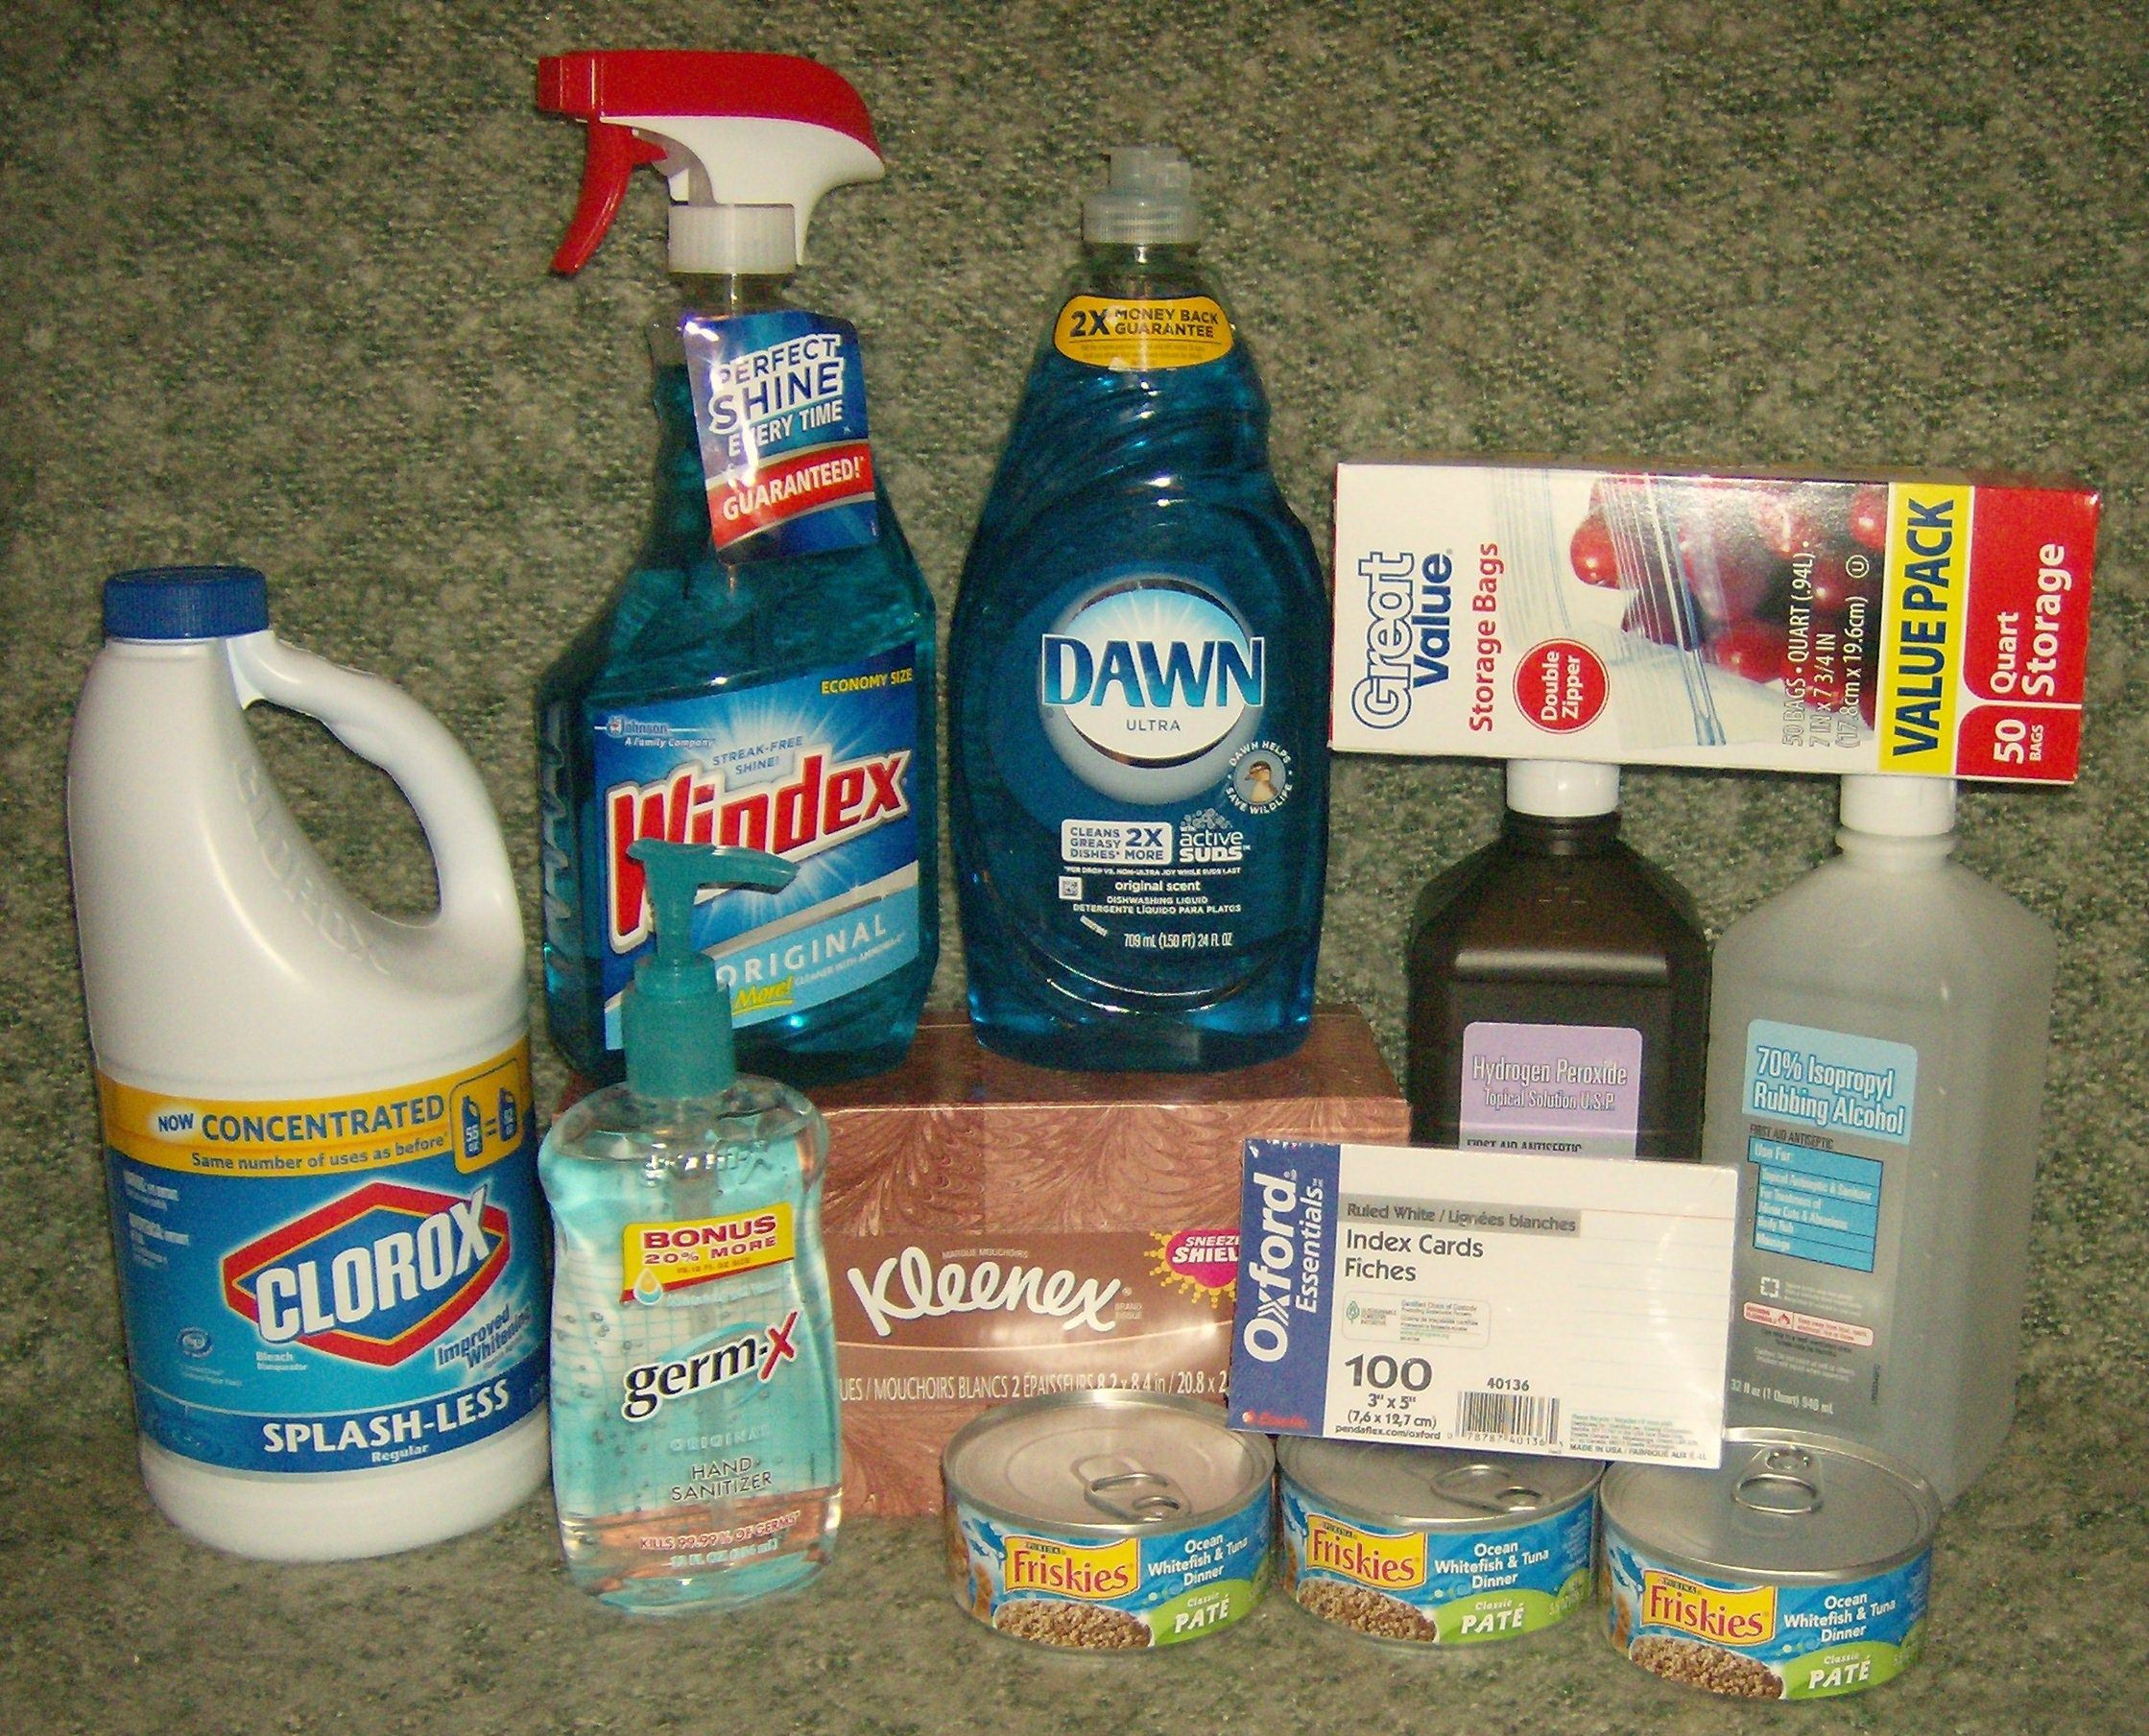 Look At All The Items That Were Purchased Using The Gift Card From